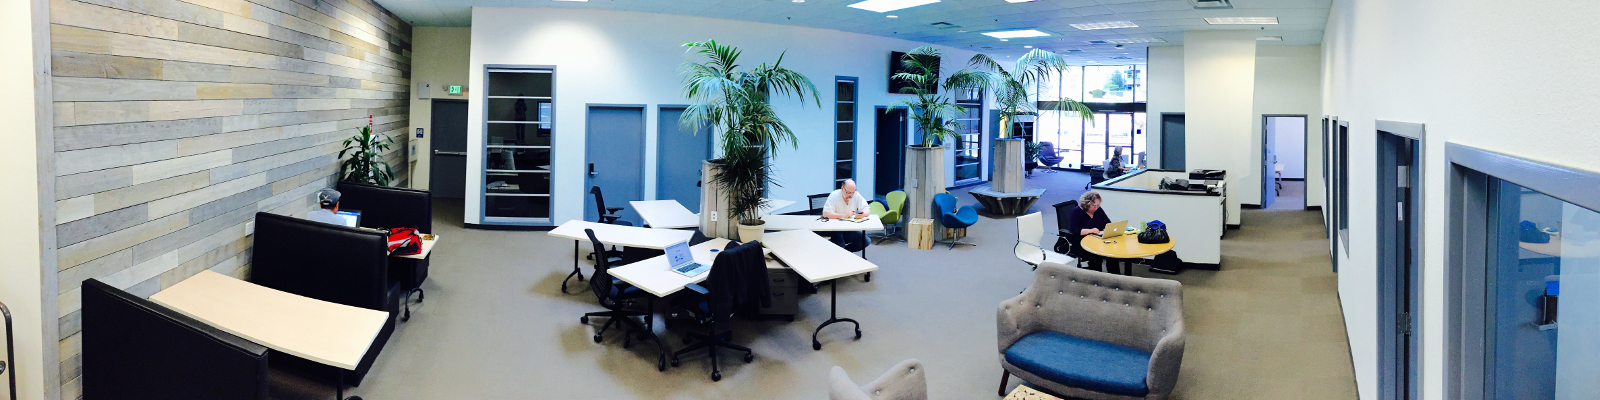 The Satellite Santa Cruz U0026 Digital Media Studio Is The Office, Workspace  And Studio You Need    Coworking, Private Offices, Virtual Office Plans, ...